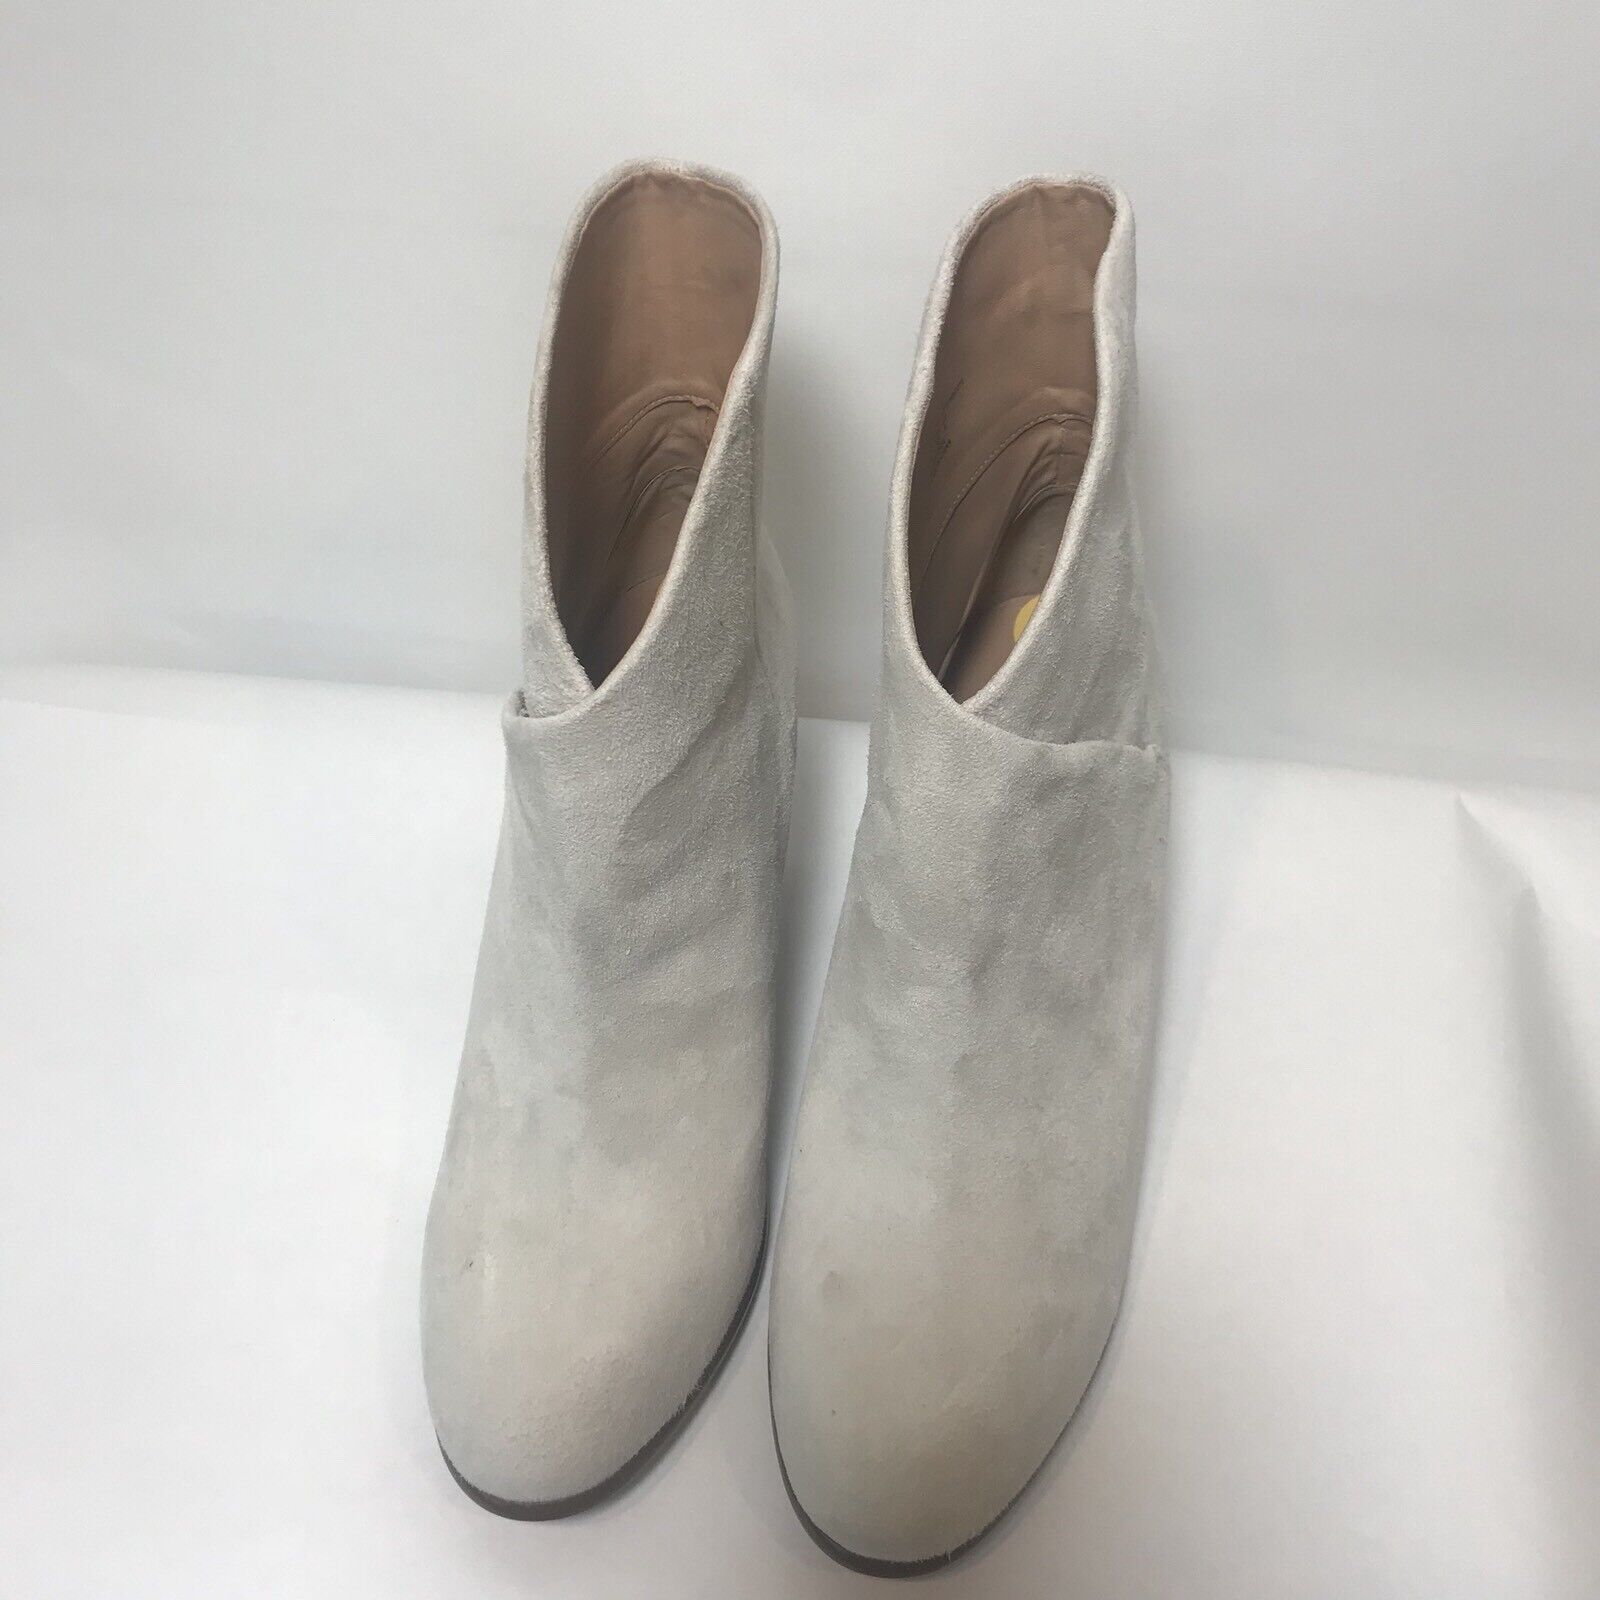 JOE'S Womens Size 11 Tisha Booties Cream Ivory Suede Credver Ankle Boots